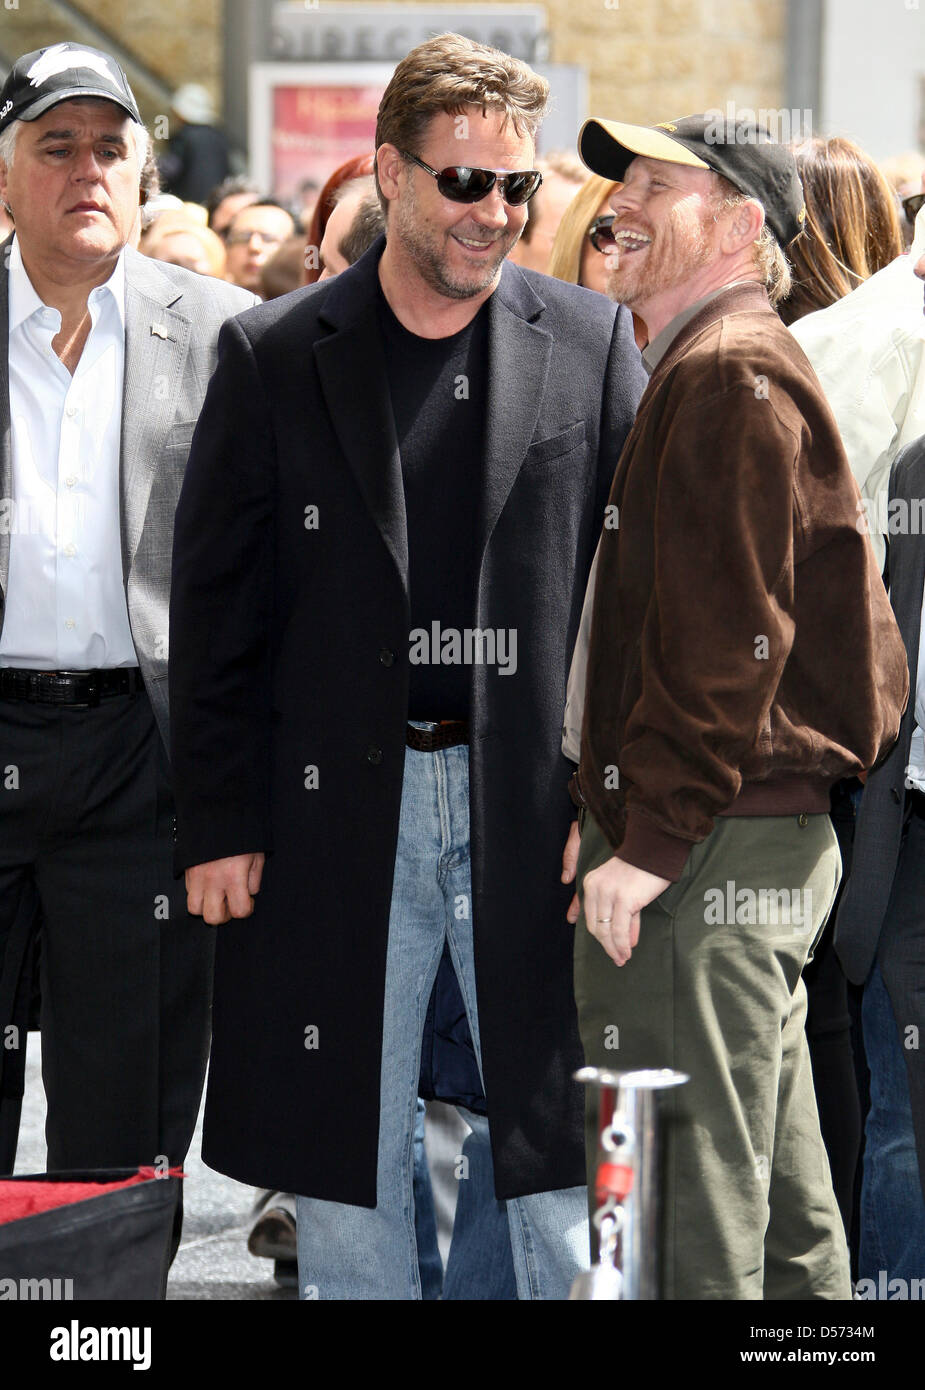 Attore australiano Russell Crowe (C) e il regista Ron Howard parla accanto  a show host Jay Leno (L) mentre Crowe riceve i 2,404th della stella sulla  Hollywood Walk of Fame in Hollywood,